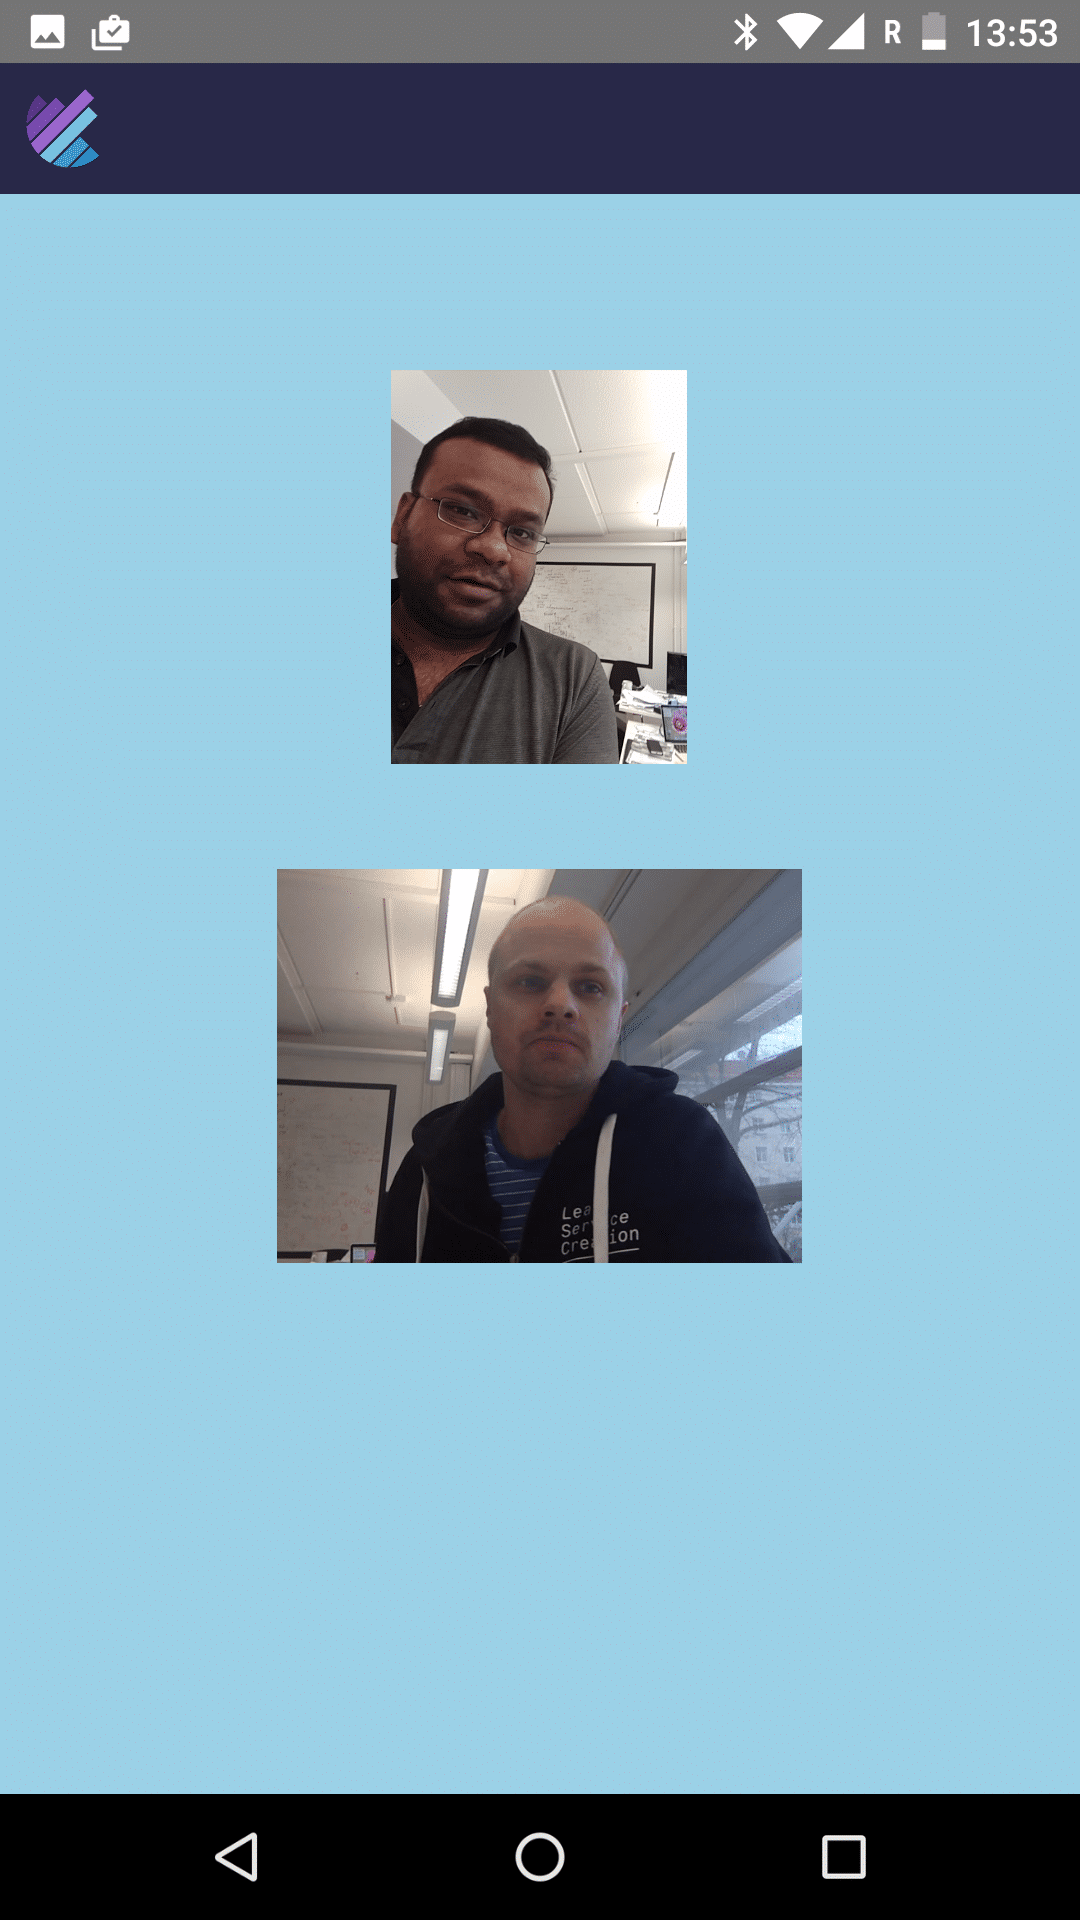 A live conference in the callstats.io React Native application.